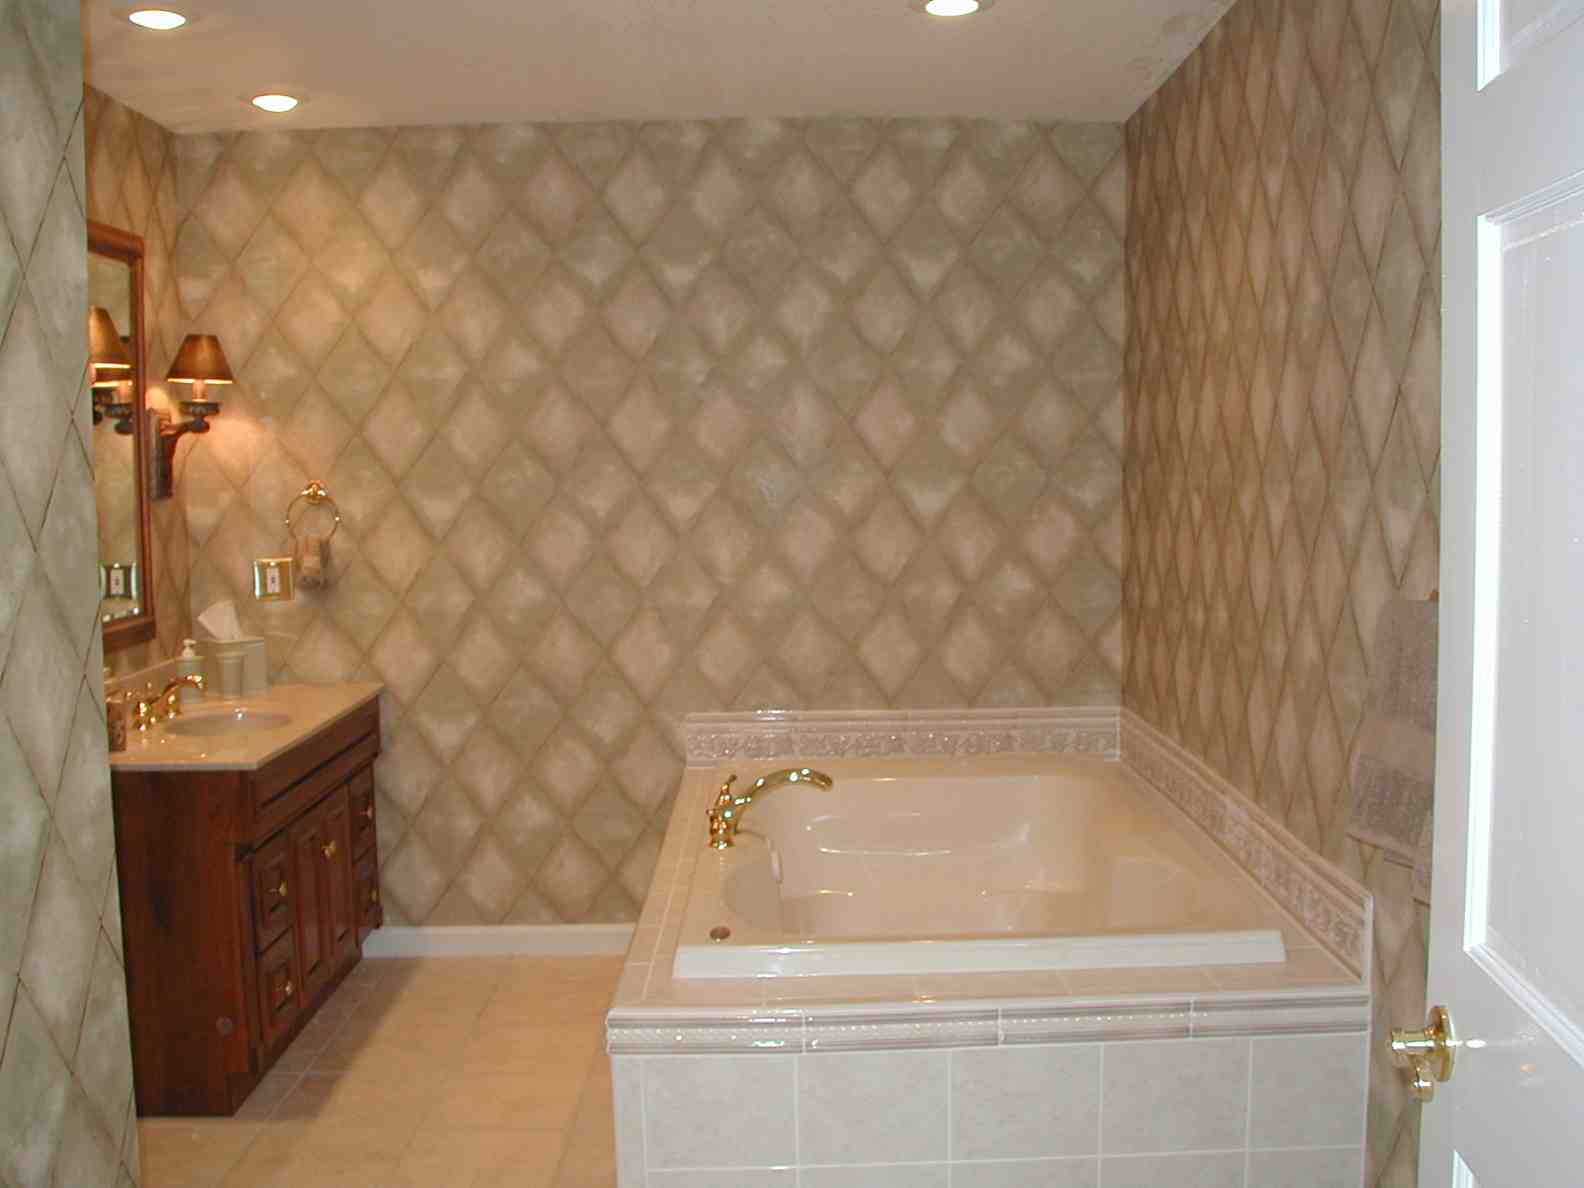 glass-mosaic-tile-bathroom-design-ideas